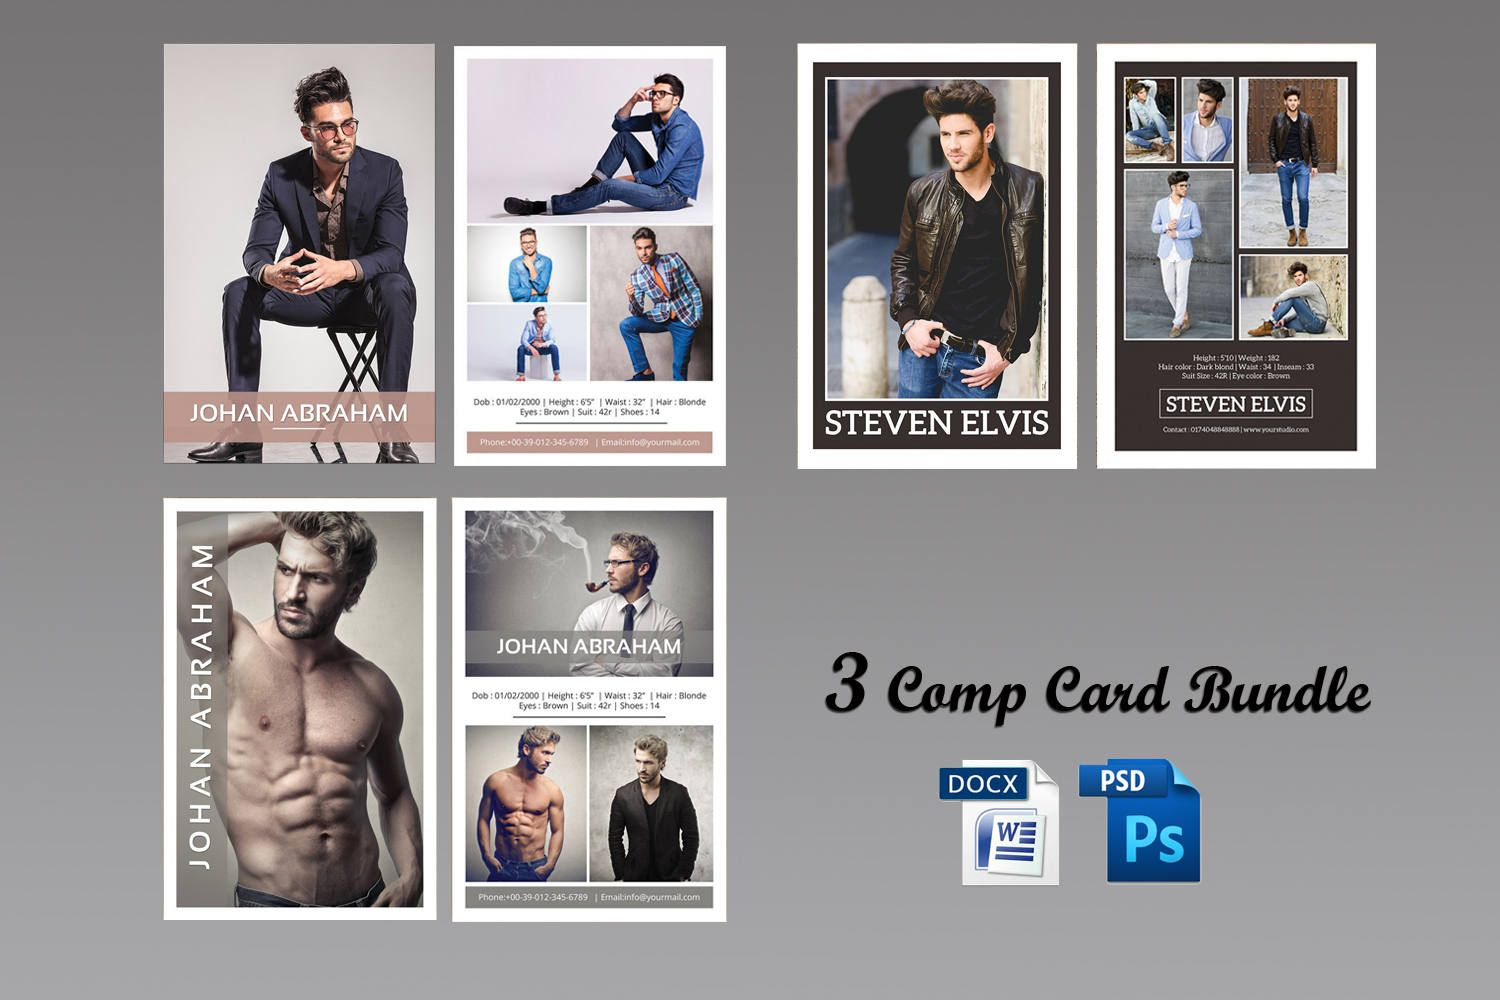 3 Model Comp Card Template Bundle Modeling Comp Card Etsy Model Comp Card Card Templates Free Card Template